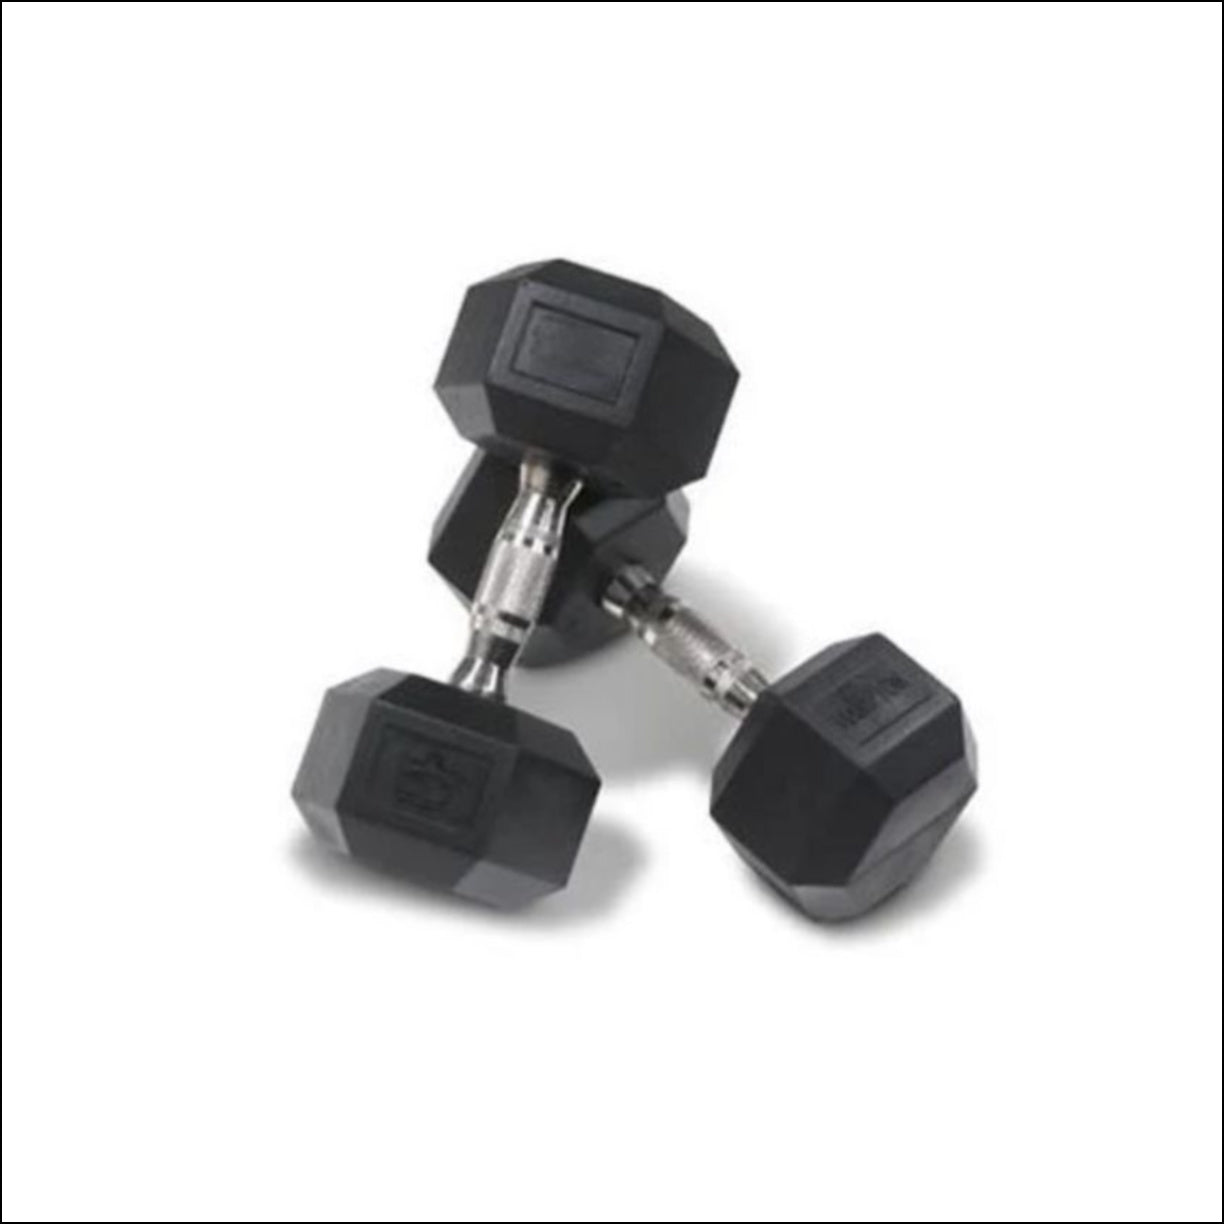 PAIR OF 42.5-kg RUBBER HEX DUMBBELLS  Muscle Motion Rubber coated hexagonal dumbbells with ergonomic handles are designed for increased comfort and improved durability. Rubber coating reduces noise improves life cycle of the product  (other finishes such as chrome and cast iron are subject to chipping and rust). Rubber coated dumbbells are also kinder on floor surfaces. The hexagonal shaped ends are designed to prevent the dumbbell from rolling on the floor or dumbbell rack.